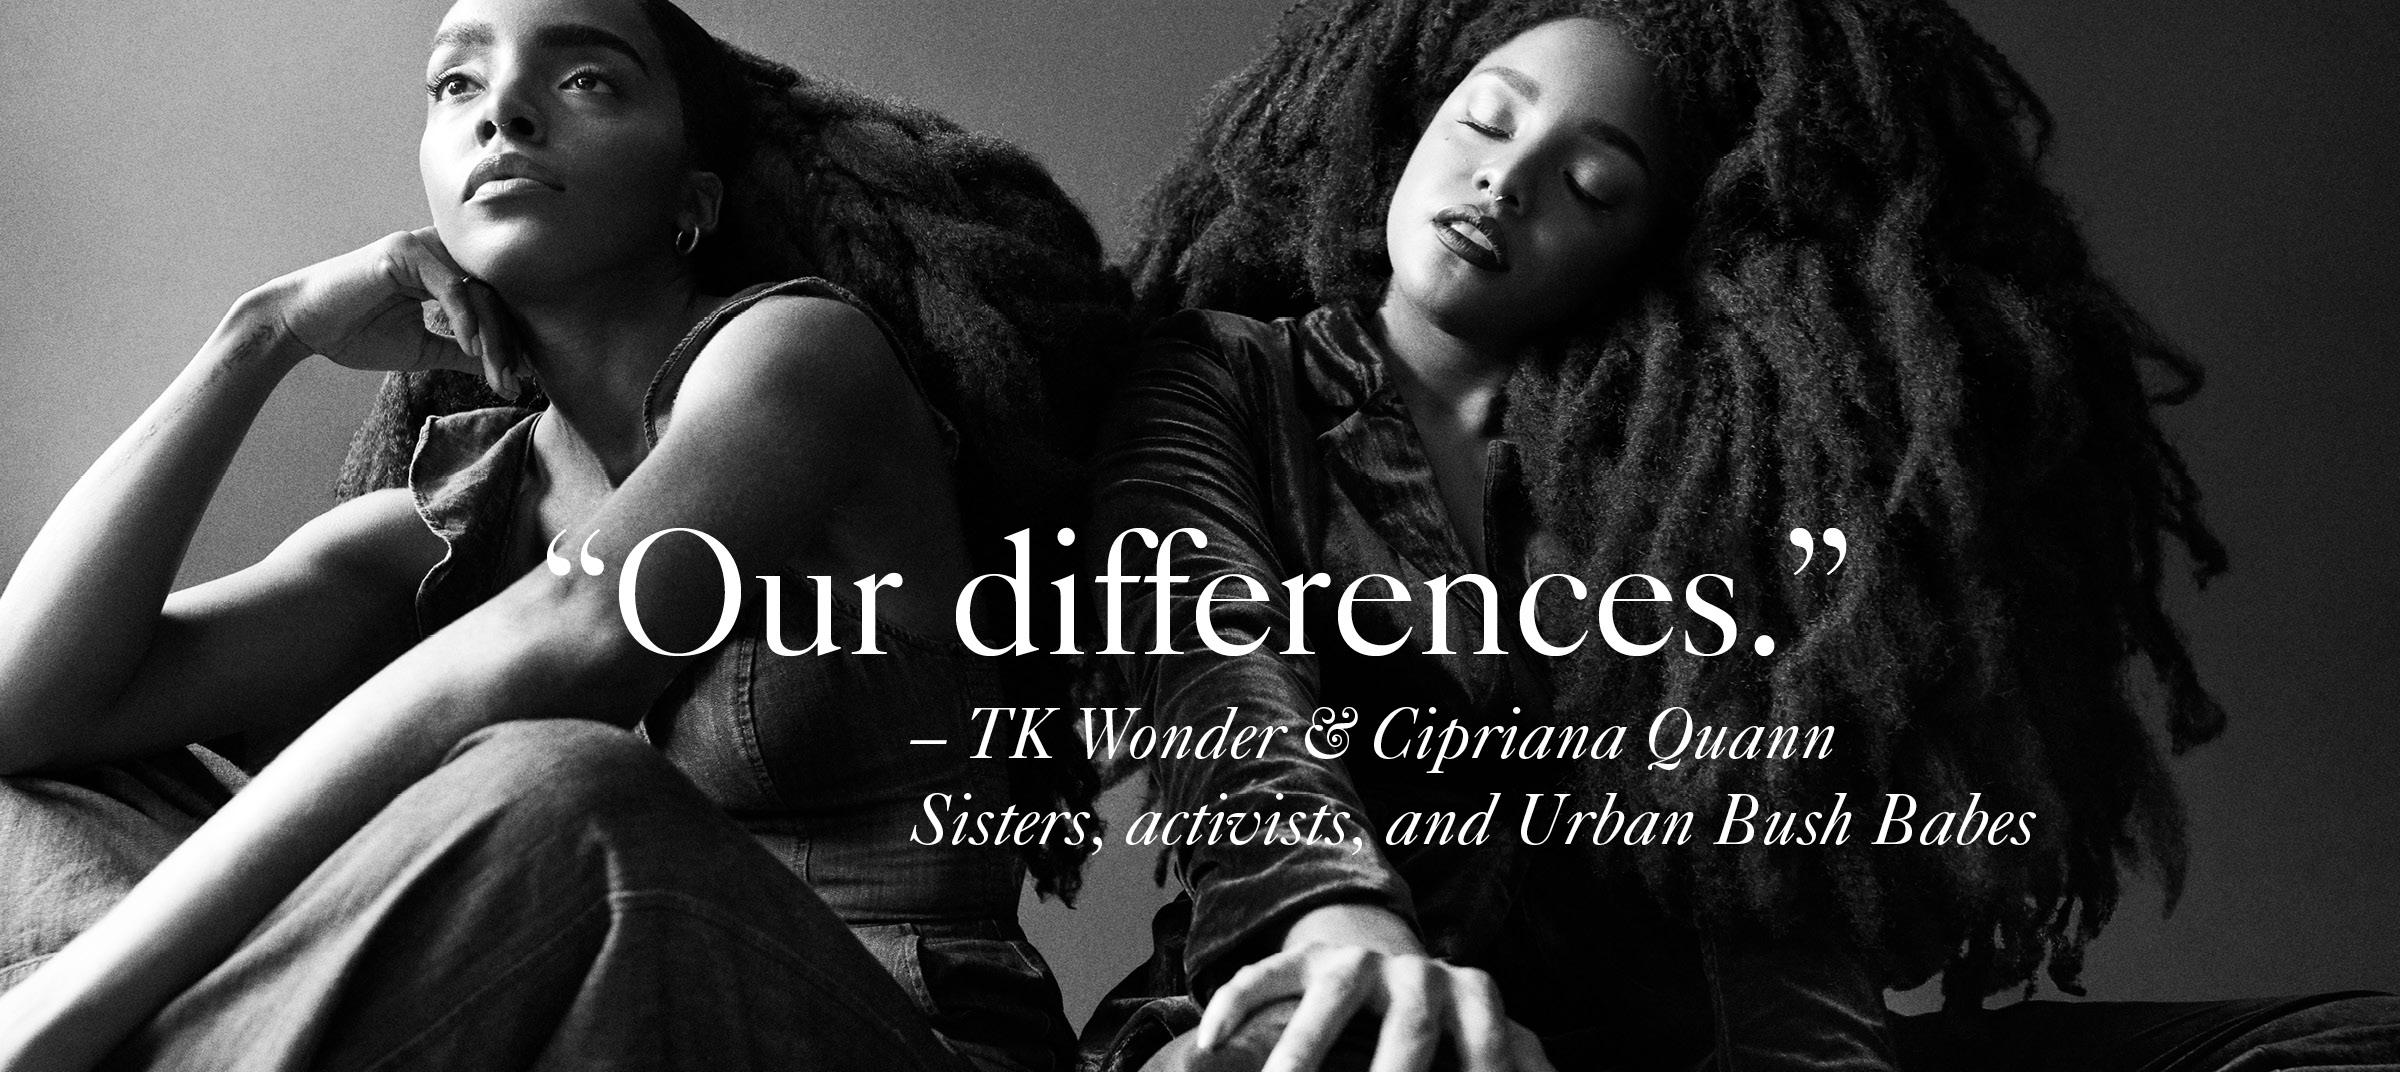 TK Wonder and Cipriana Quann shot by Michael Avedon for unique collaboration on Masthead Magazine's online platform.